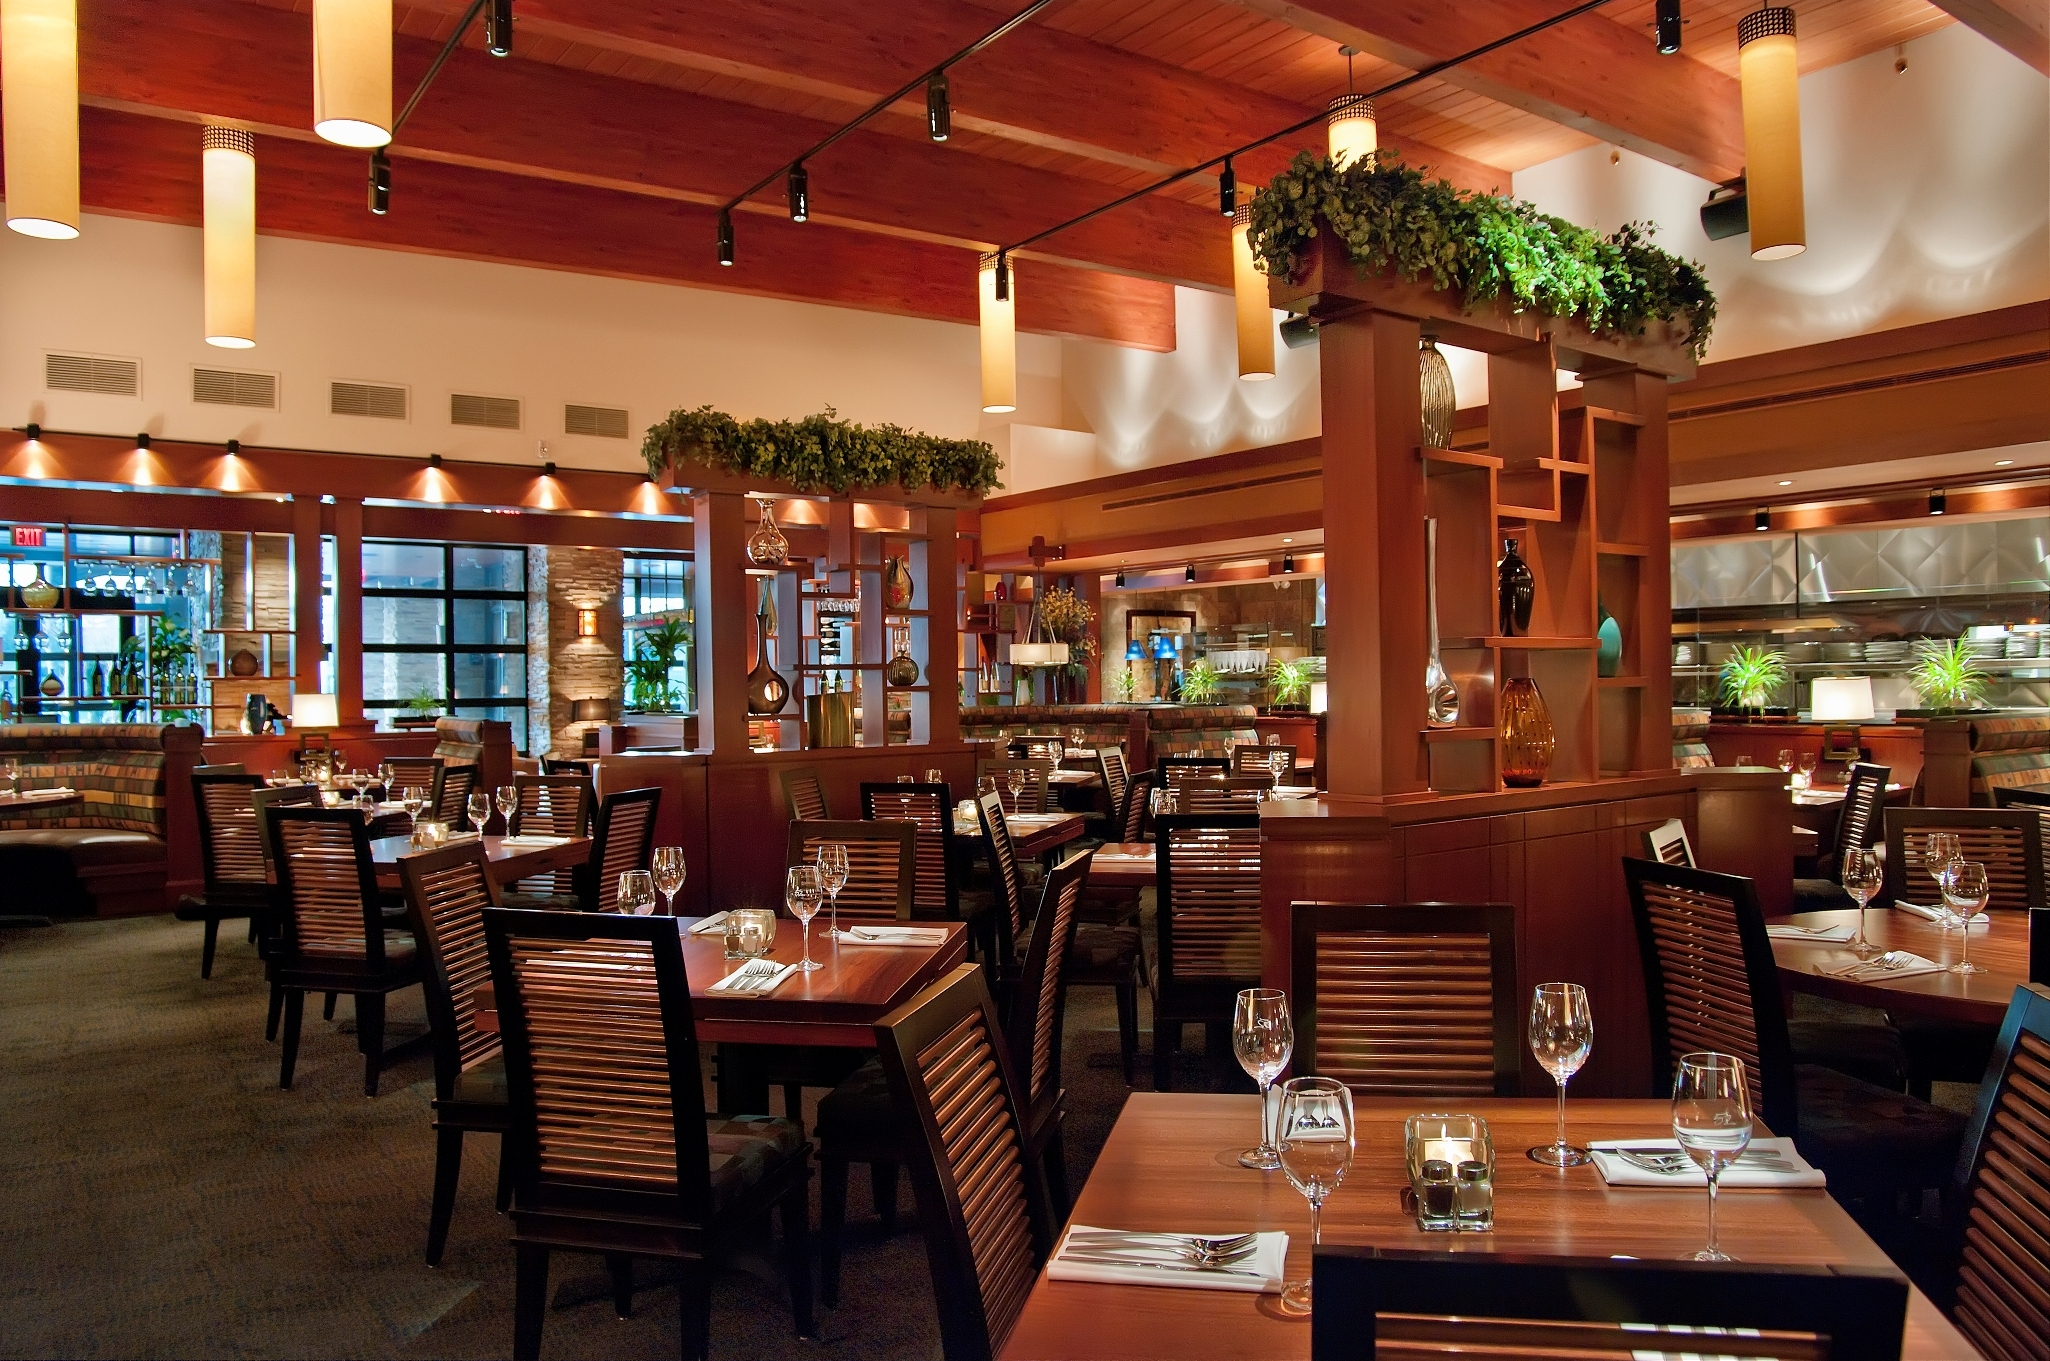 Image gallery seasons 52 for Open table seasons 52 king of prussia